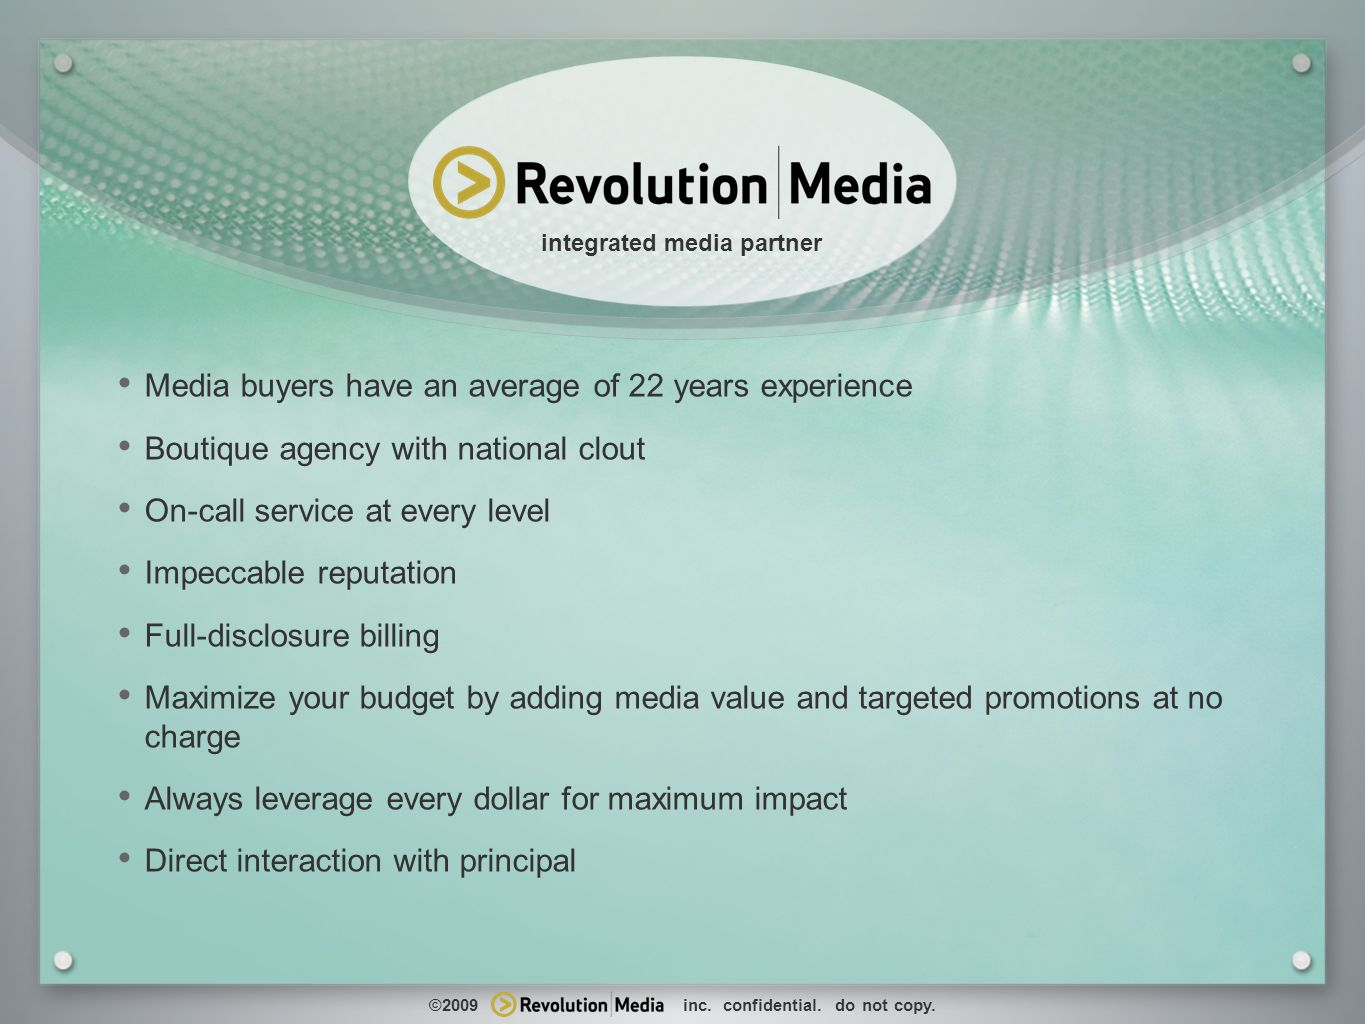 5 www.revolutionmediainc.com integrated media partner Media buyers have an average of 22 years experience Boutique agency with national clout On-call service at every level Impeccable reputation Full-disclosure billing Maximize your budget by adding media value and targeted promotions at no charge Always leverage every dollar for maximum impact Direct interaction with principal ©2009 inc.